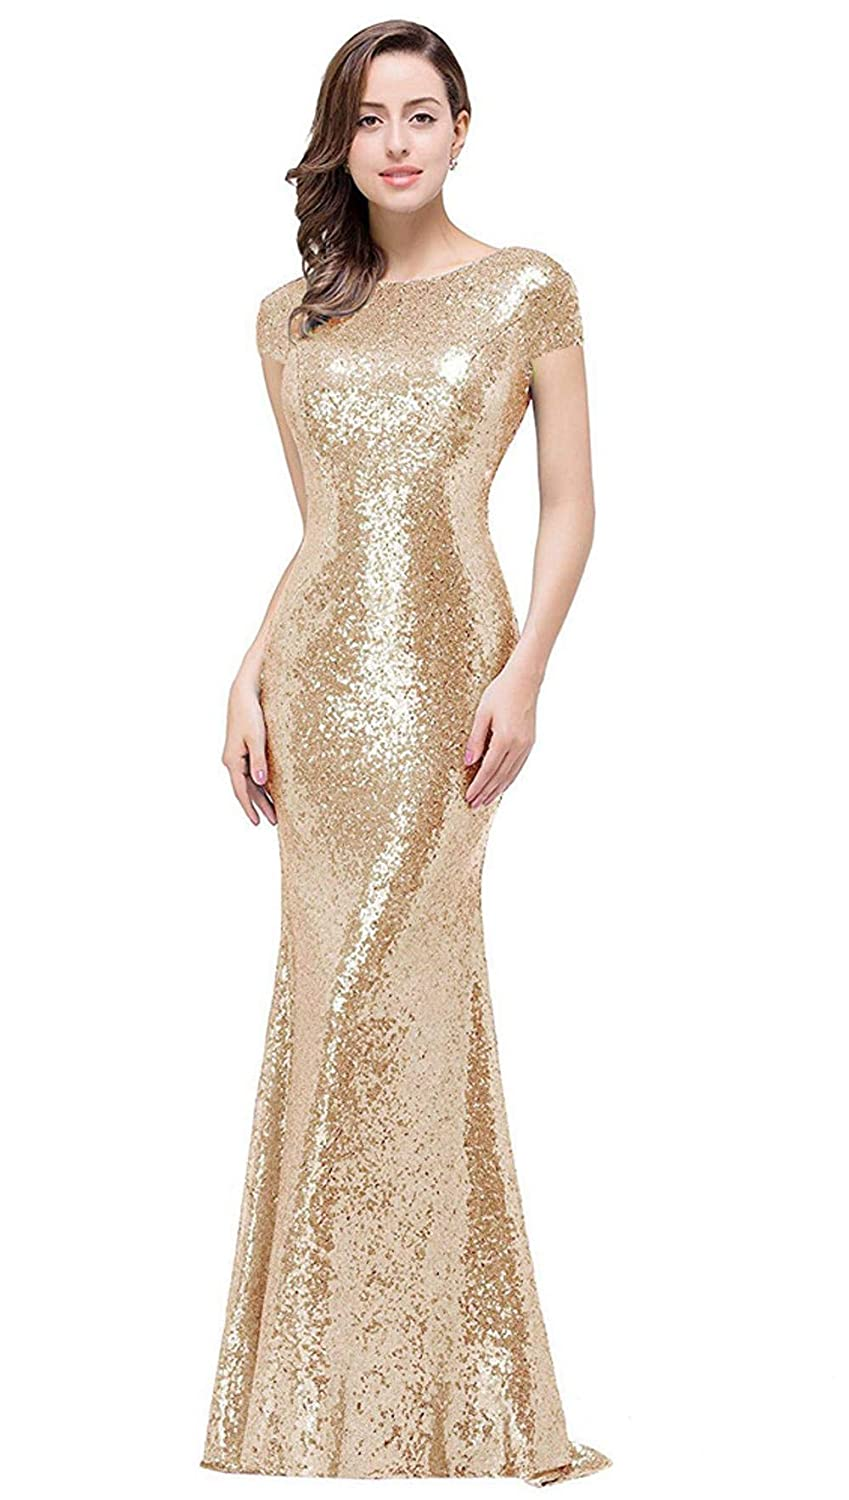 f1b867161ff MisShow Women Sequins Prom Bridesmaid Dress Glitter Rose Gold Long Evening  Gowns Formal at Amazon Women s Clothing store